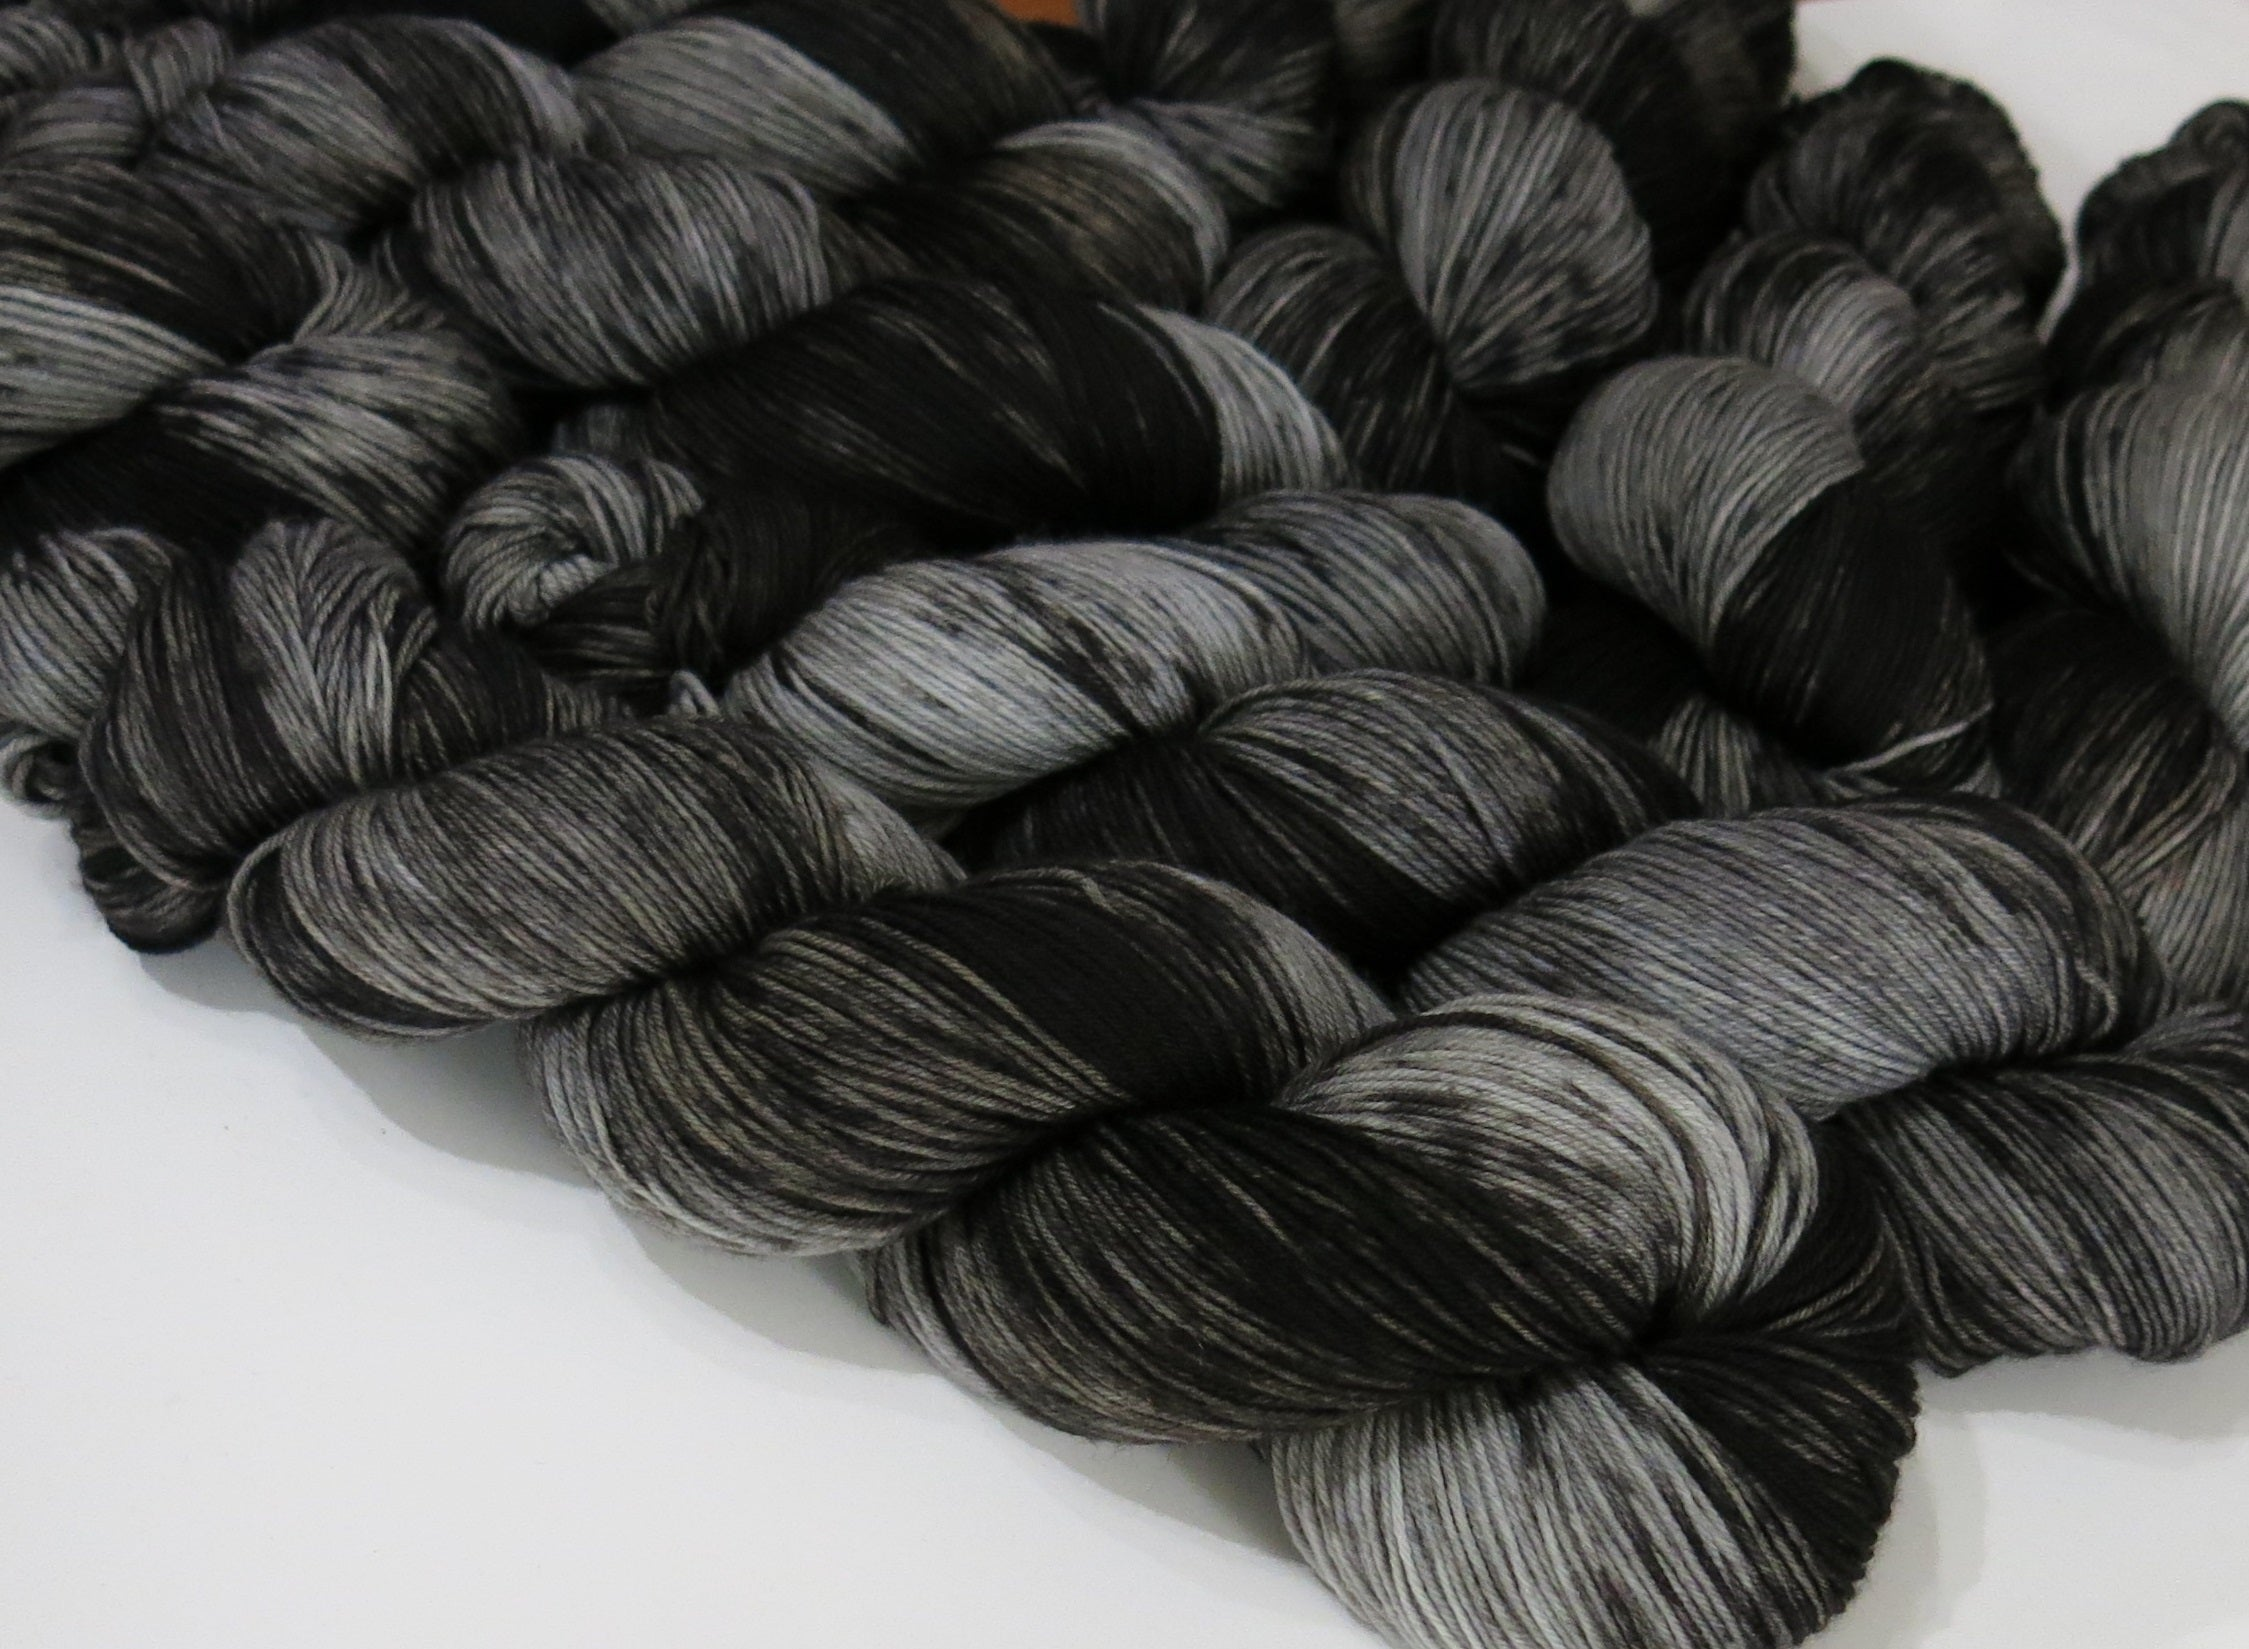 tonal black and grey sock yarn skeins inspired by fairytale bulls